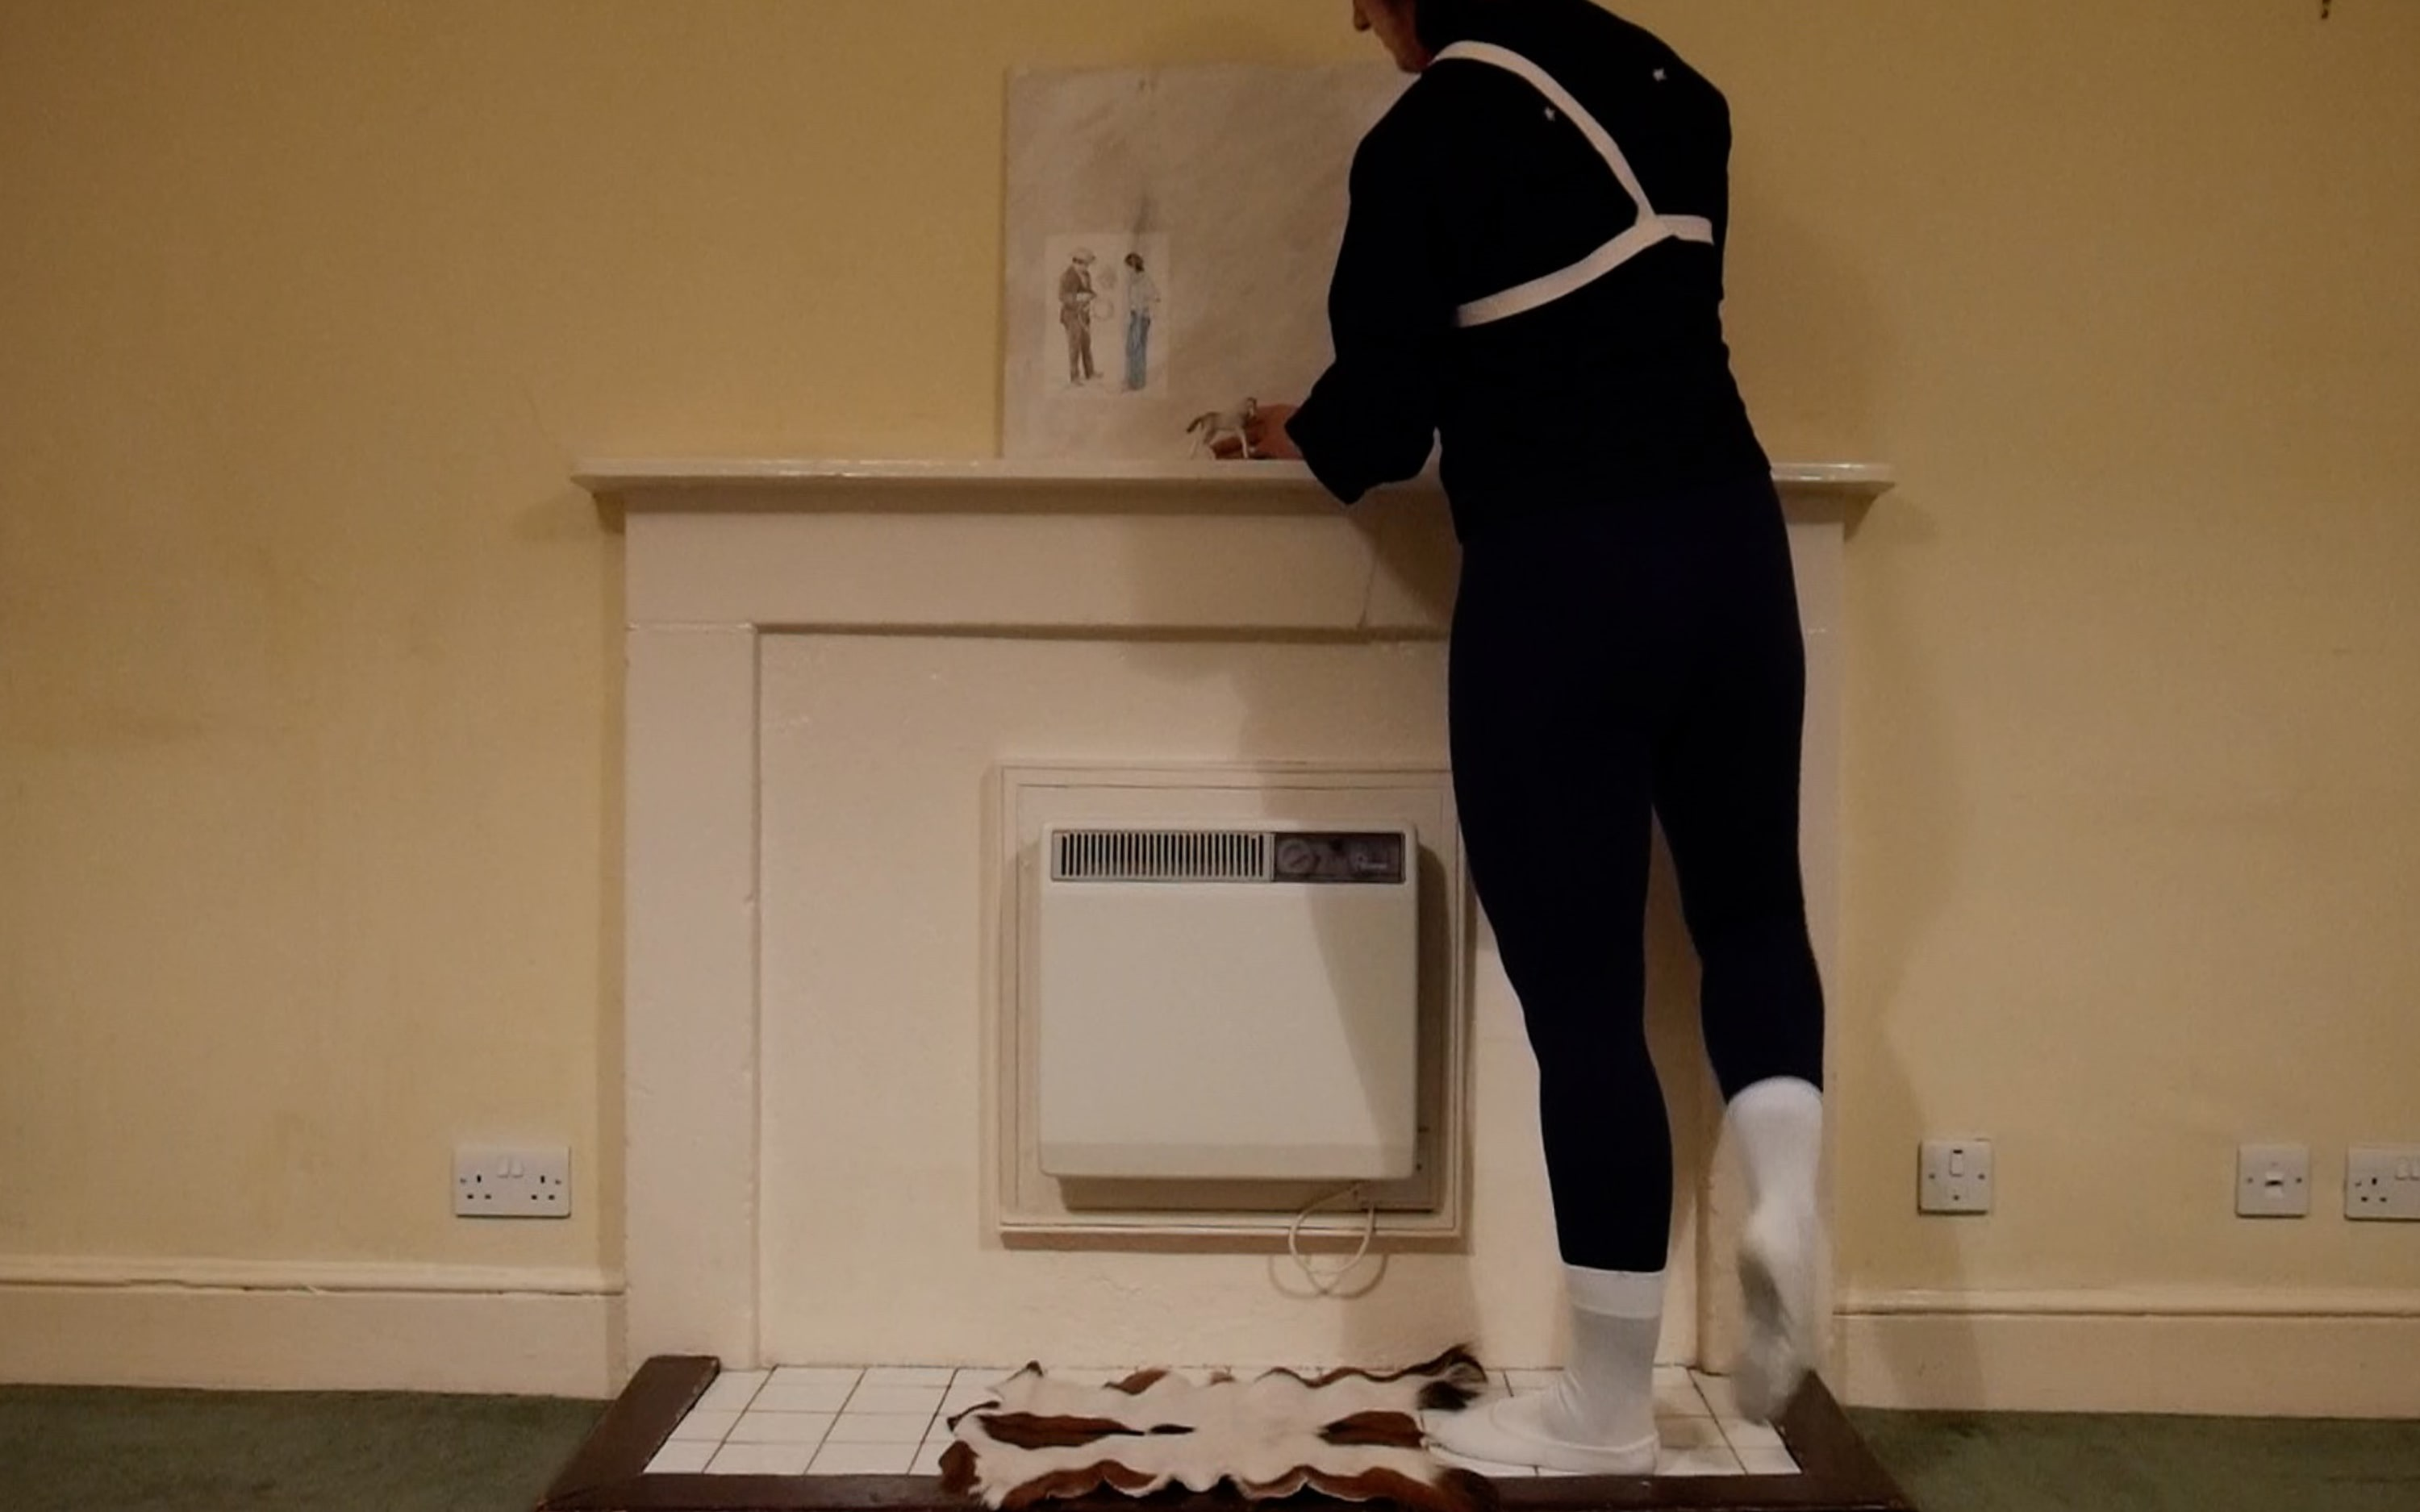 a man dressed in naval uniform and ballet shoes putting a painting of two men on to a mantlepiece.